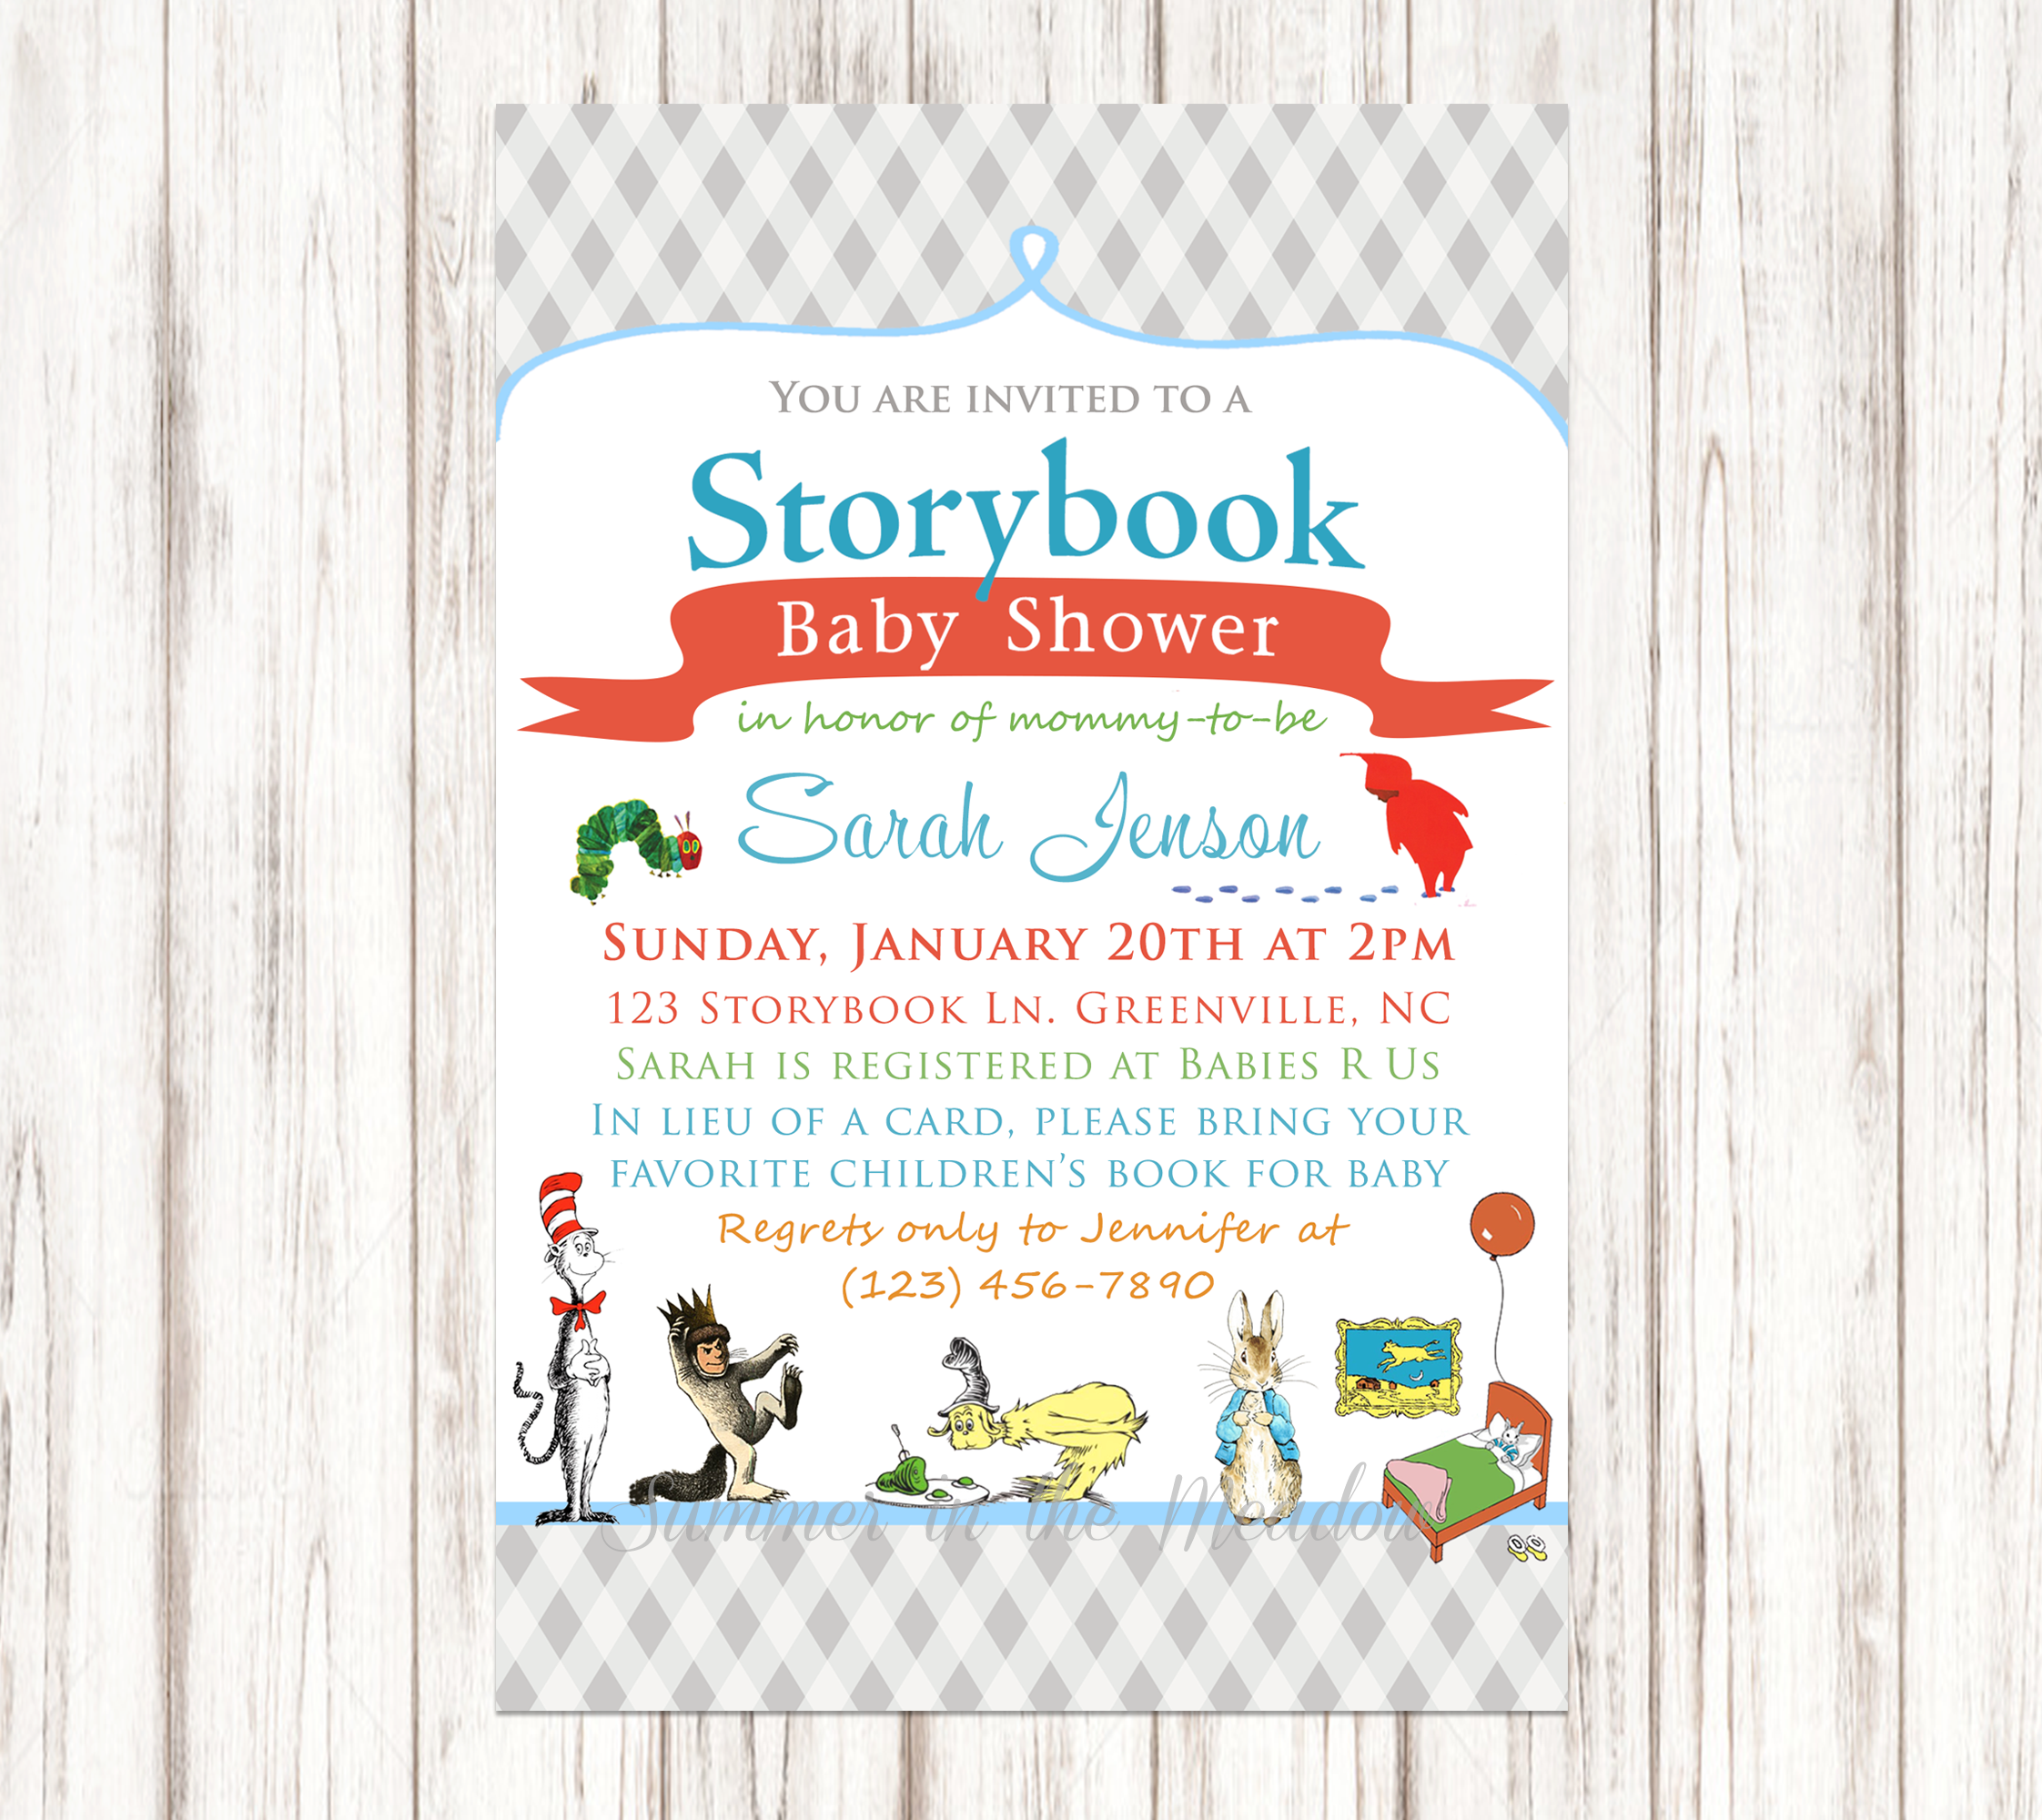 Storybook Baby Shower Invitation, Book Baby Shower Invite, Seuss ...